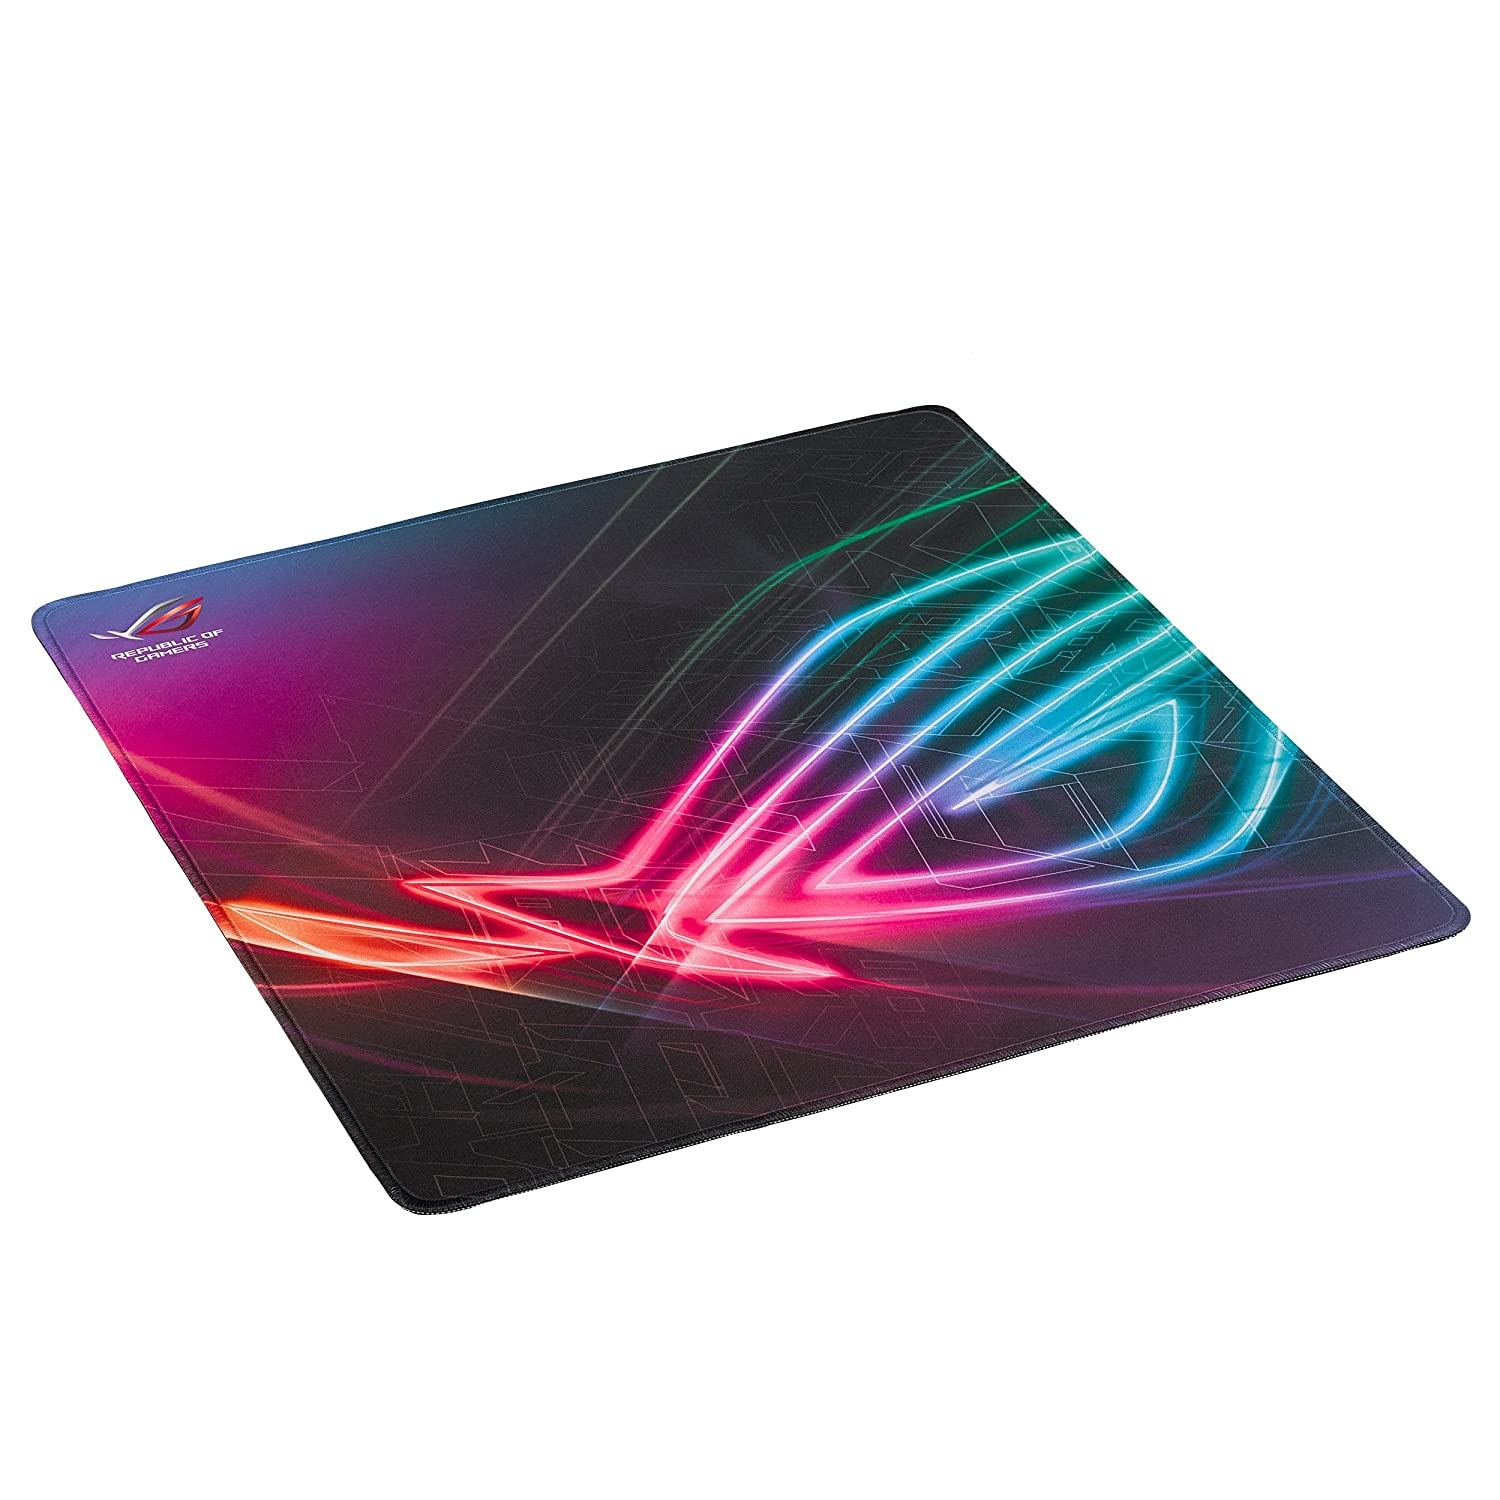 "ASUS ROG Scabbard Extra-Large Anti-fray Slip-Free Spill-Resistant Gaming Mouse Pad (35.4"" x 15.7"") ASUAA - pallet ordering"